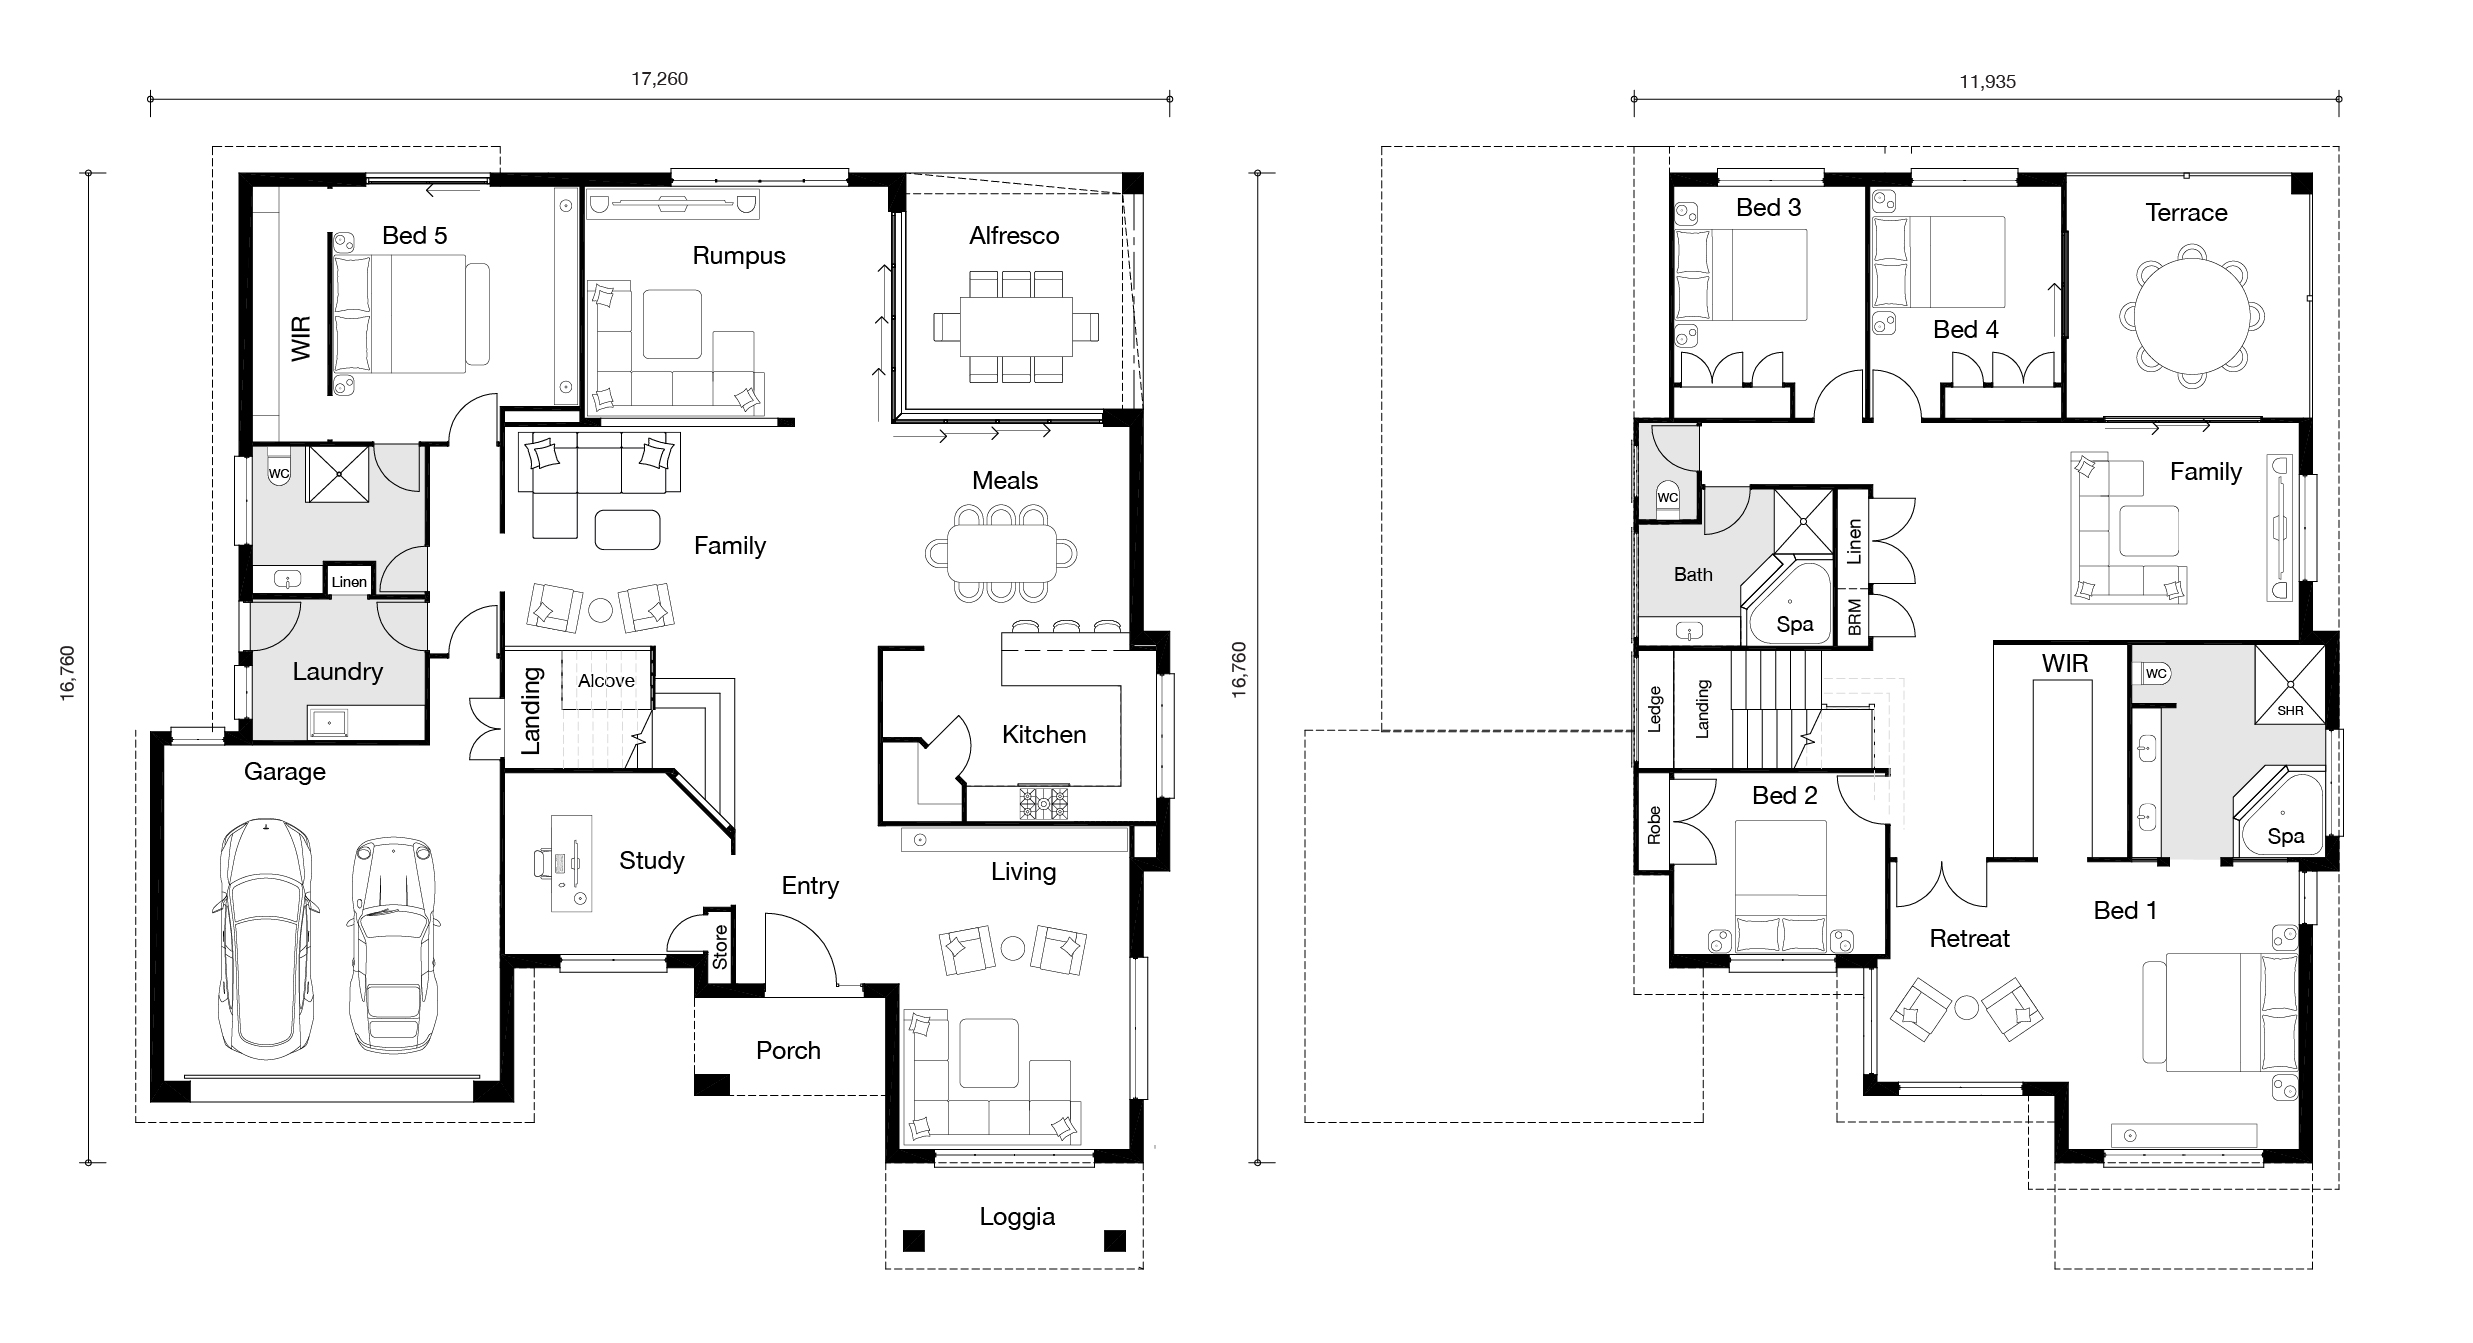 Floor plan for Grande 5 home